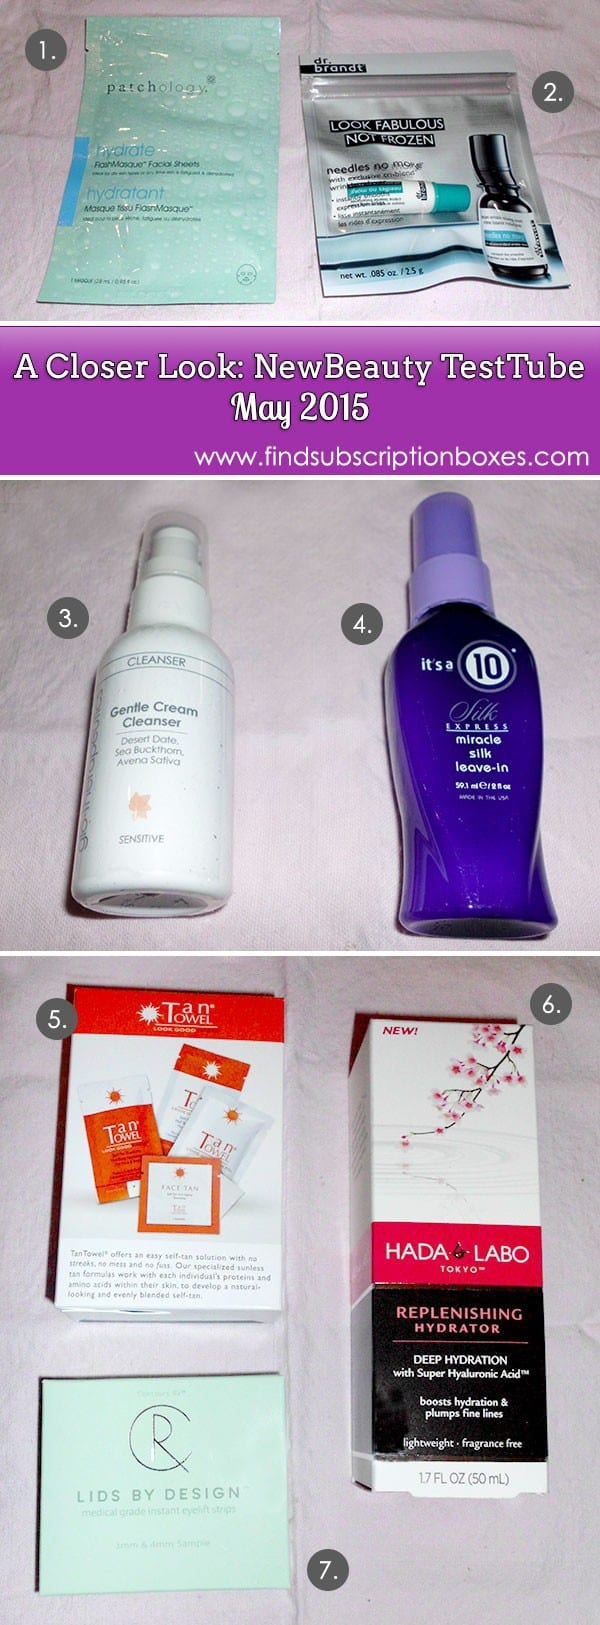 NewBeauty TestTube May 2015 Box Review - Inside the Box